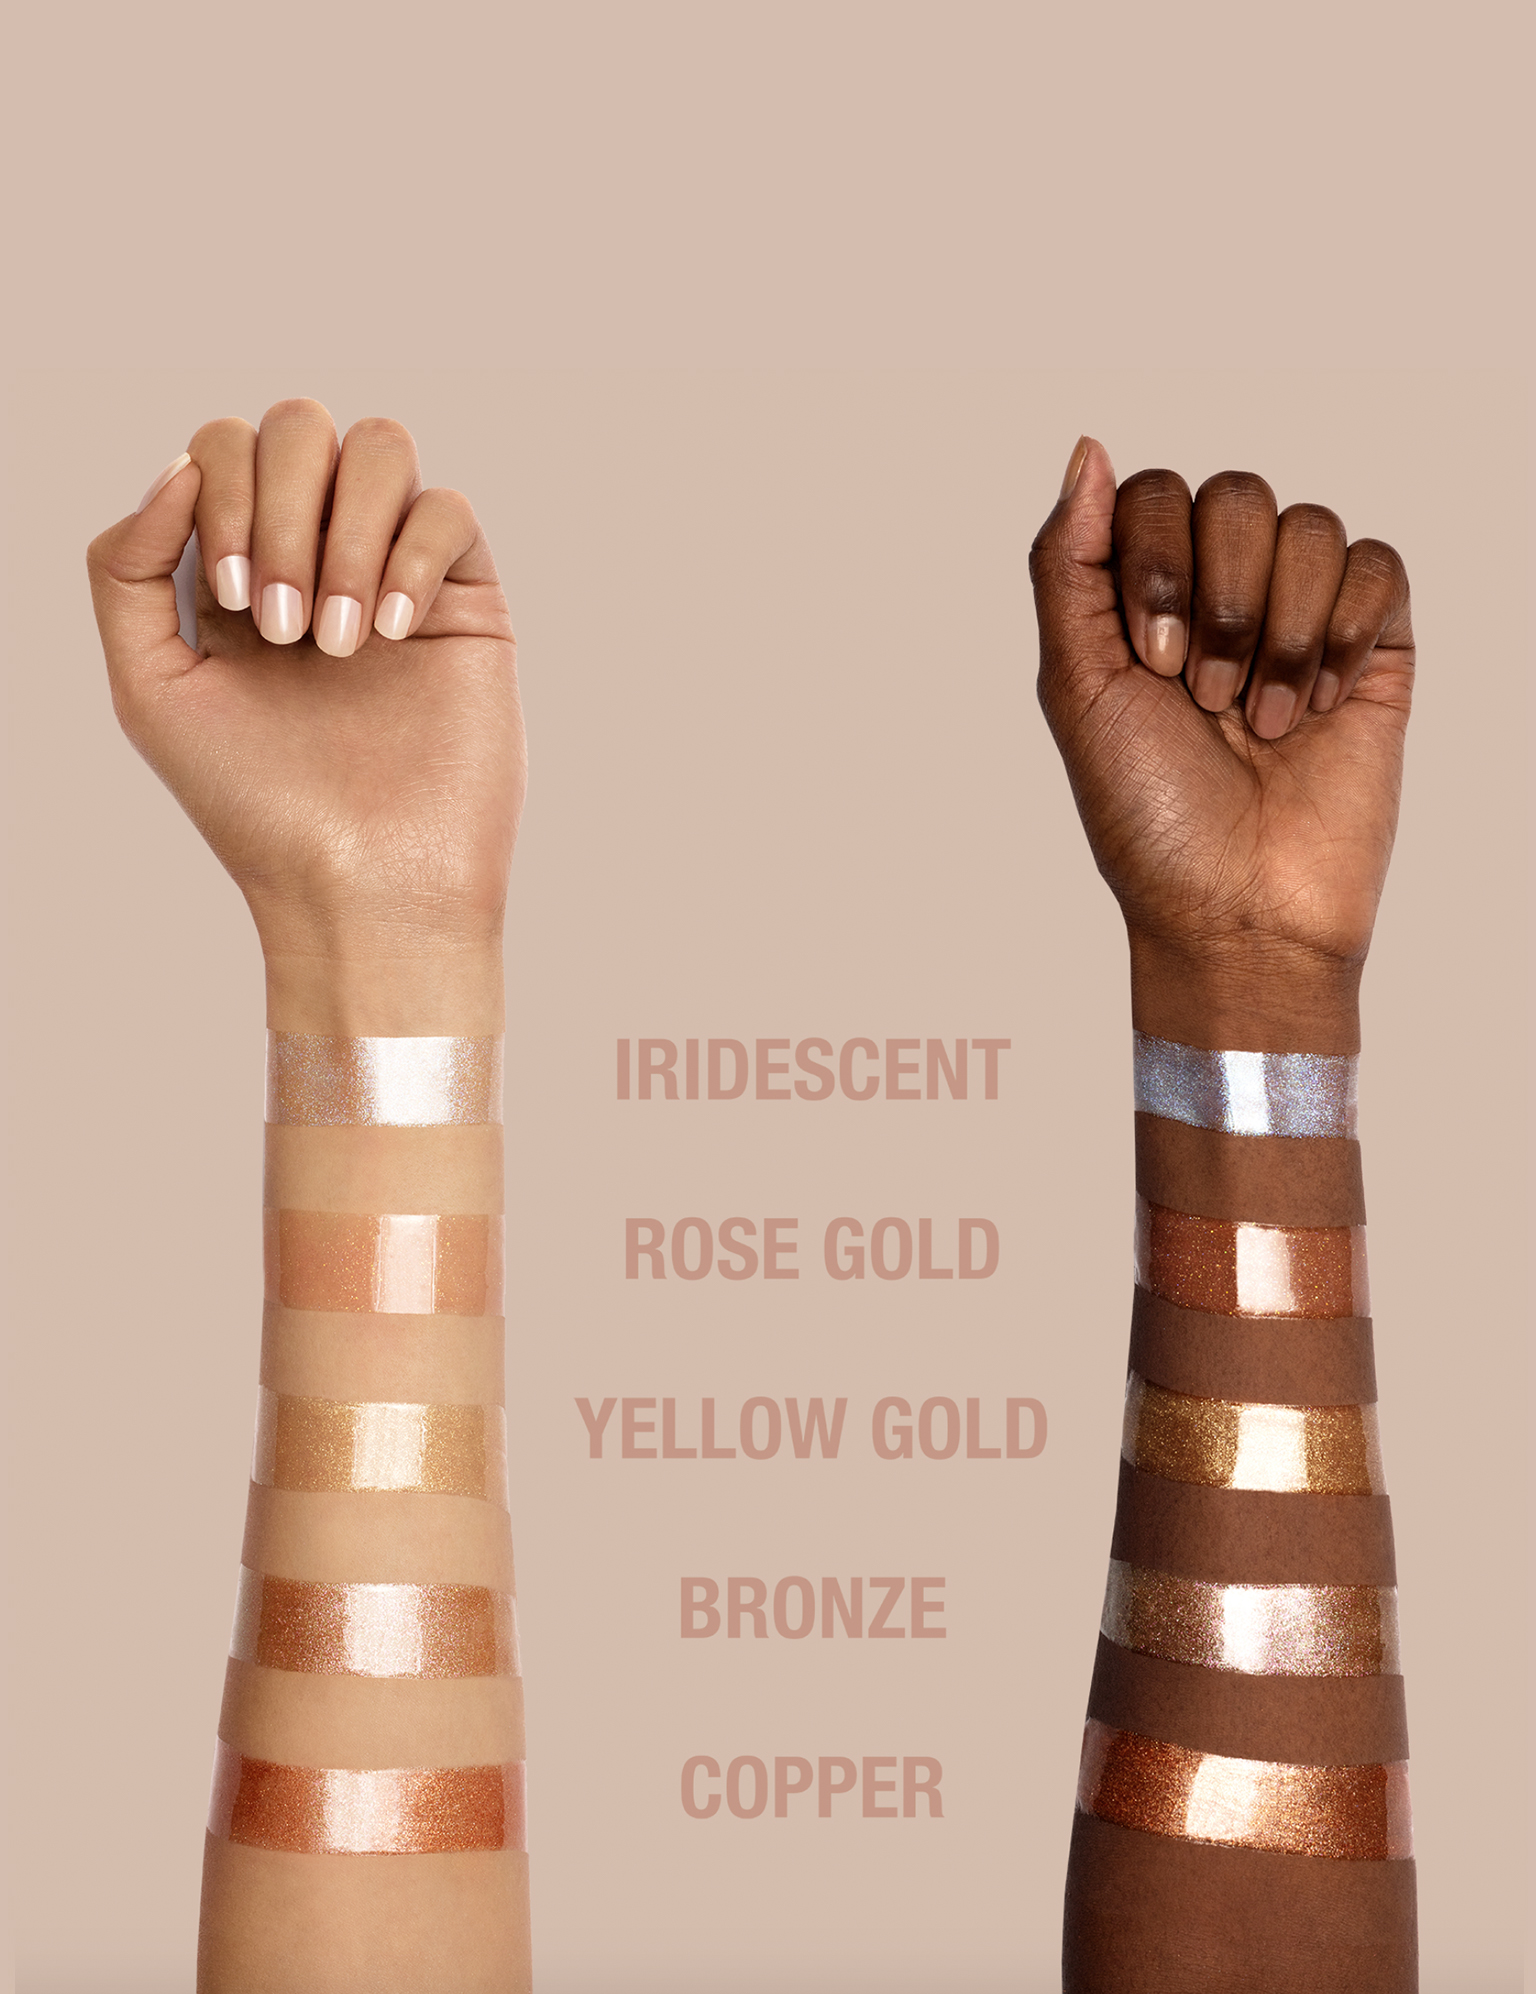 KKW-Beauty-Swatches-1.jpg